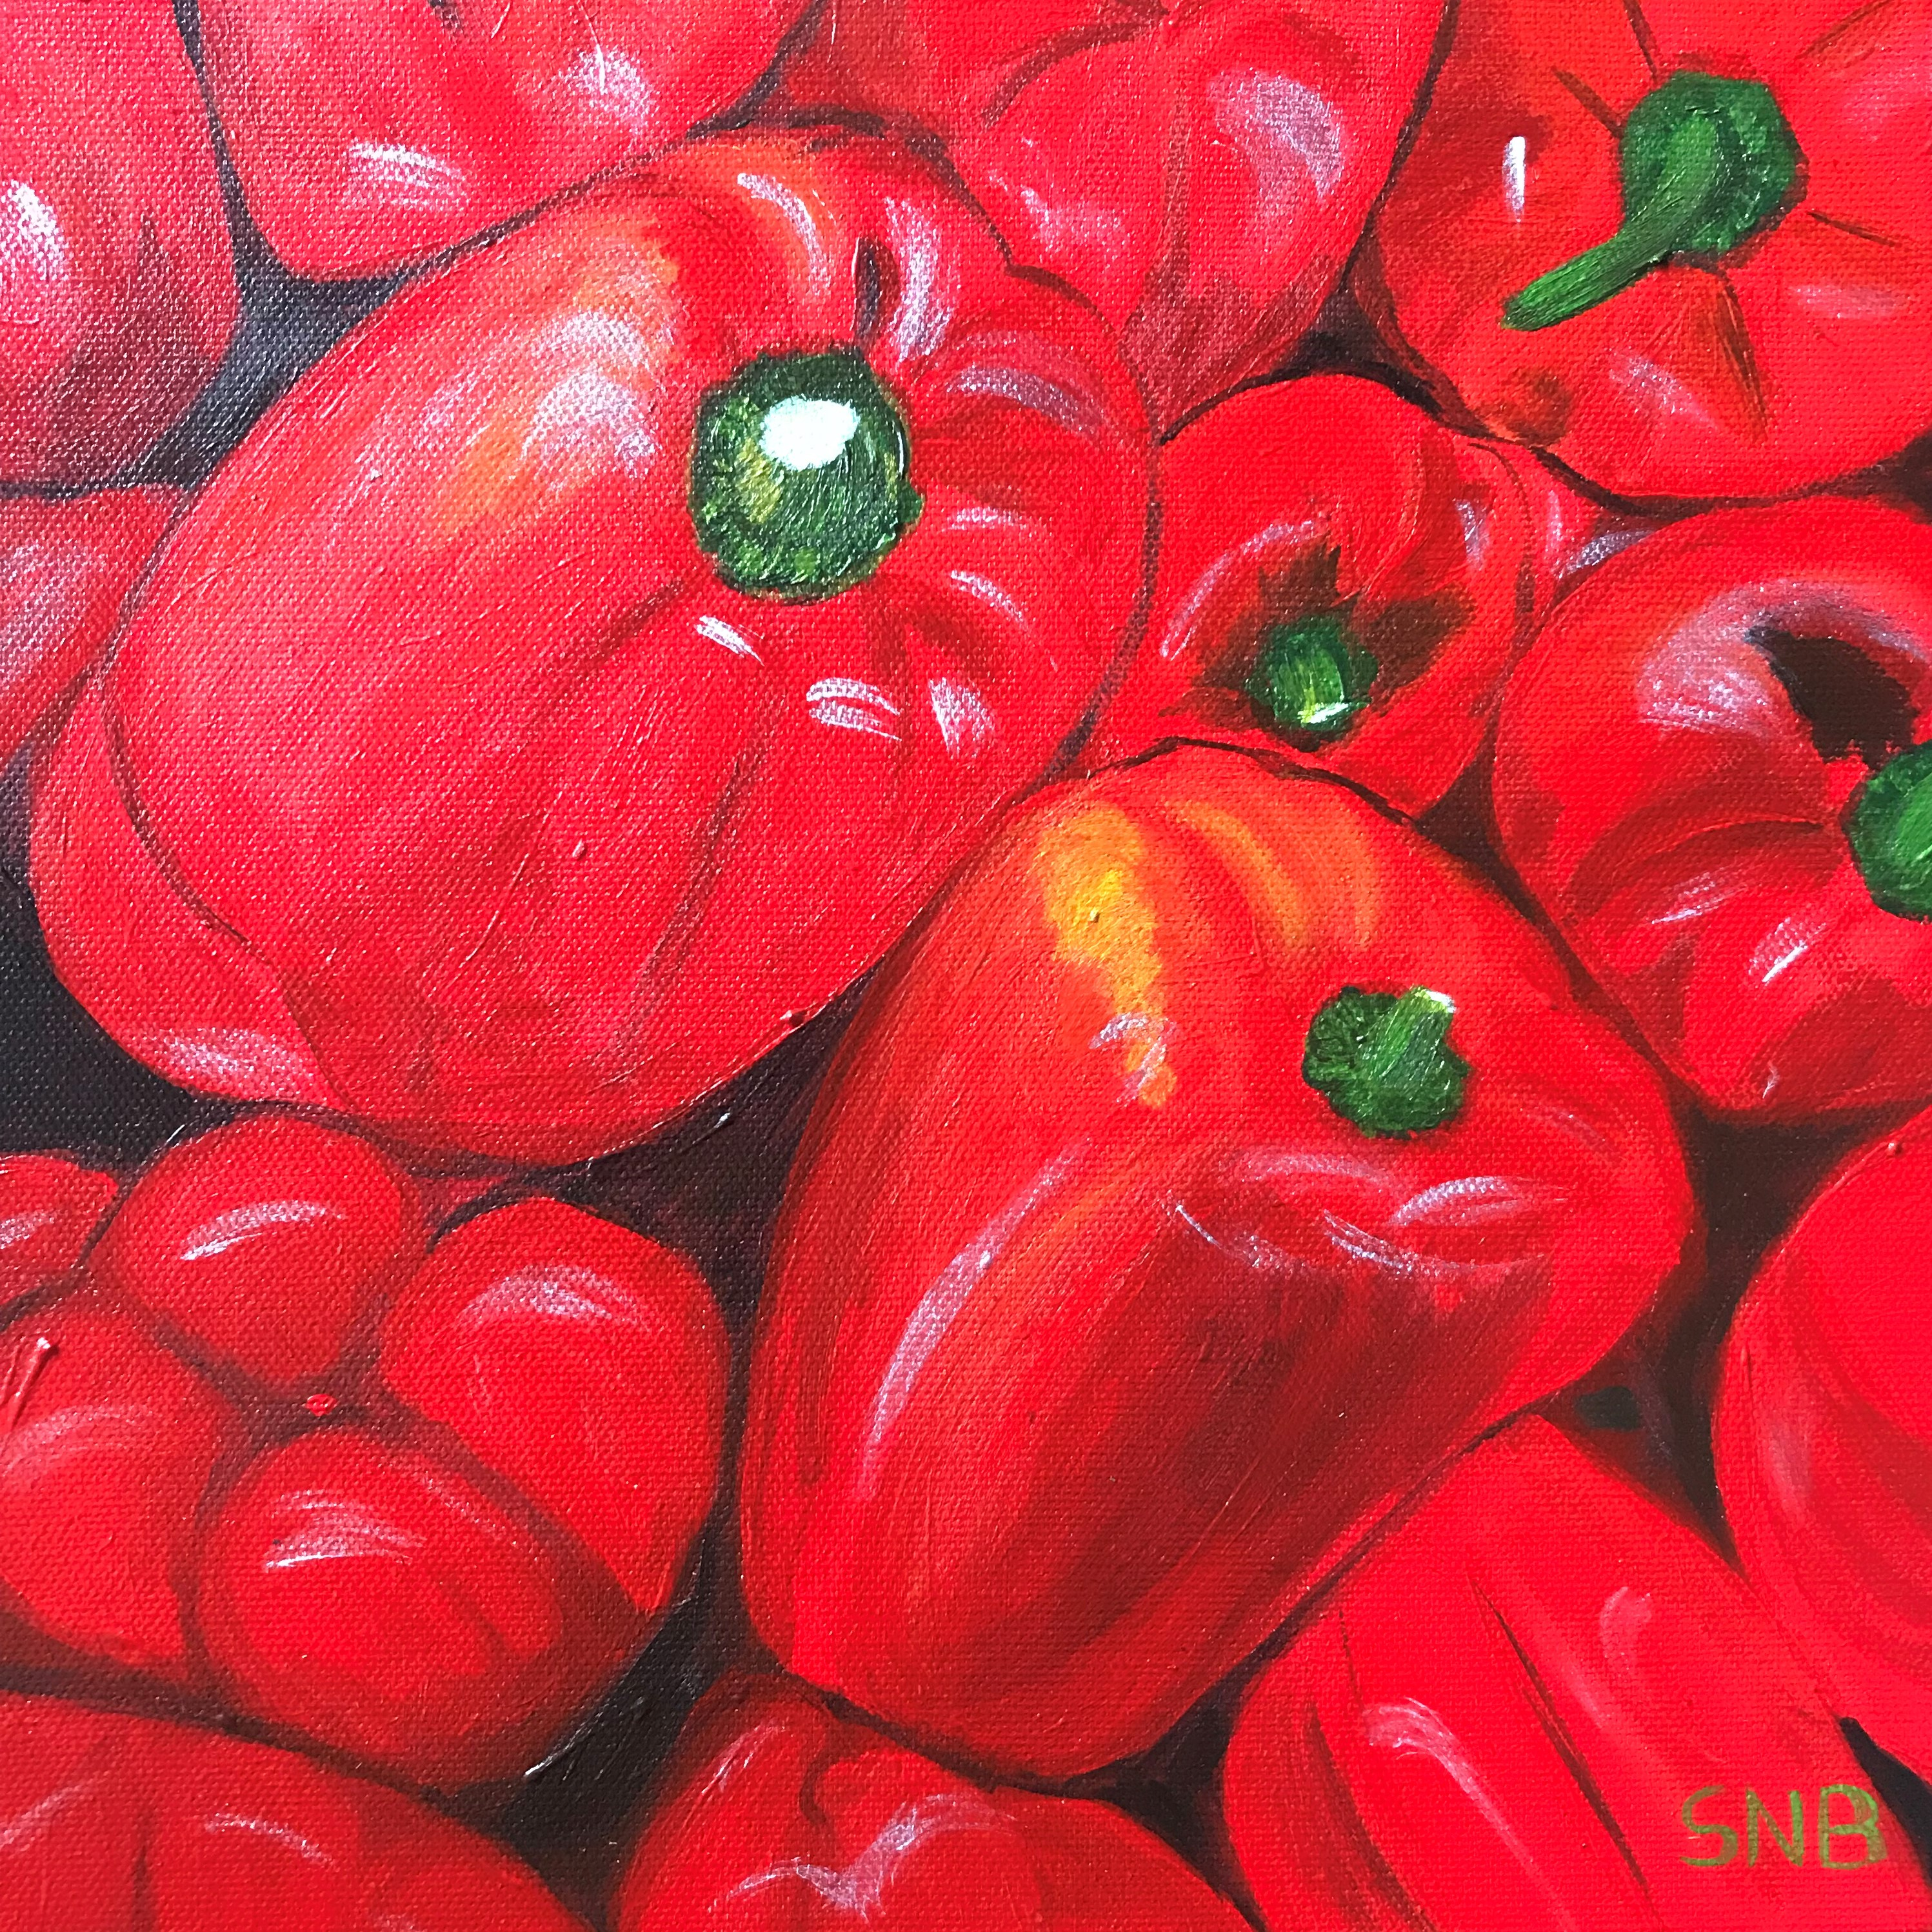 Red Peppers, a 10 x10 Acrylic Painting on Canvas. The Painting is of red bell peppers arranged randomly